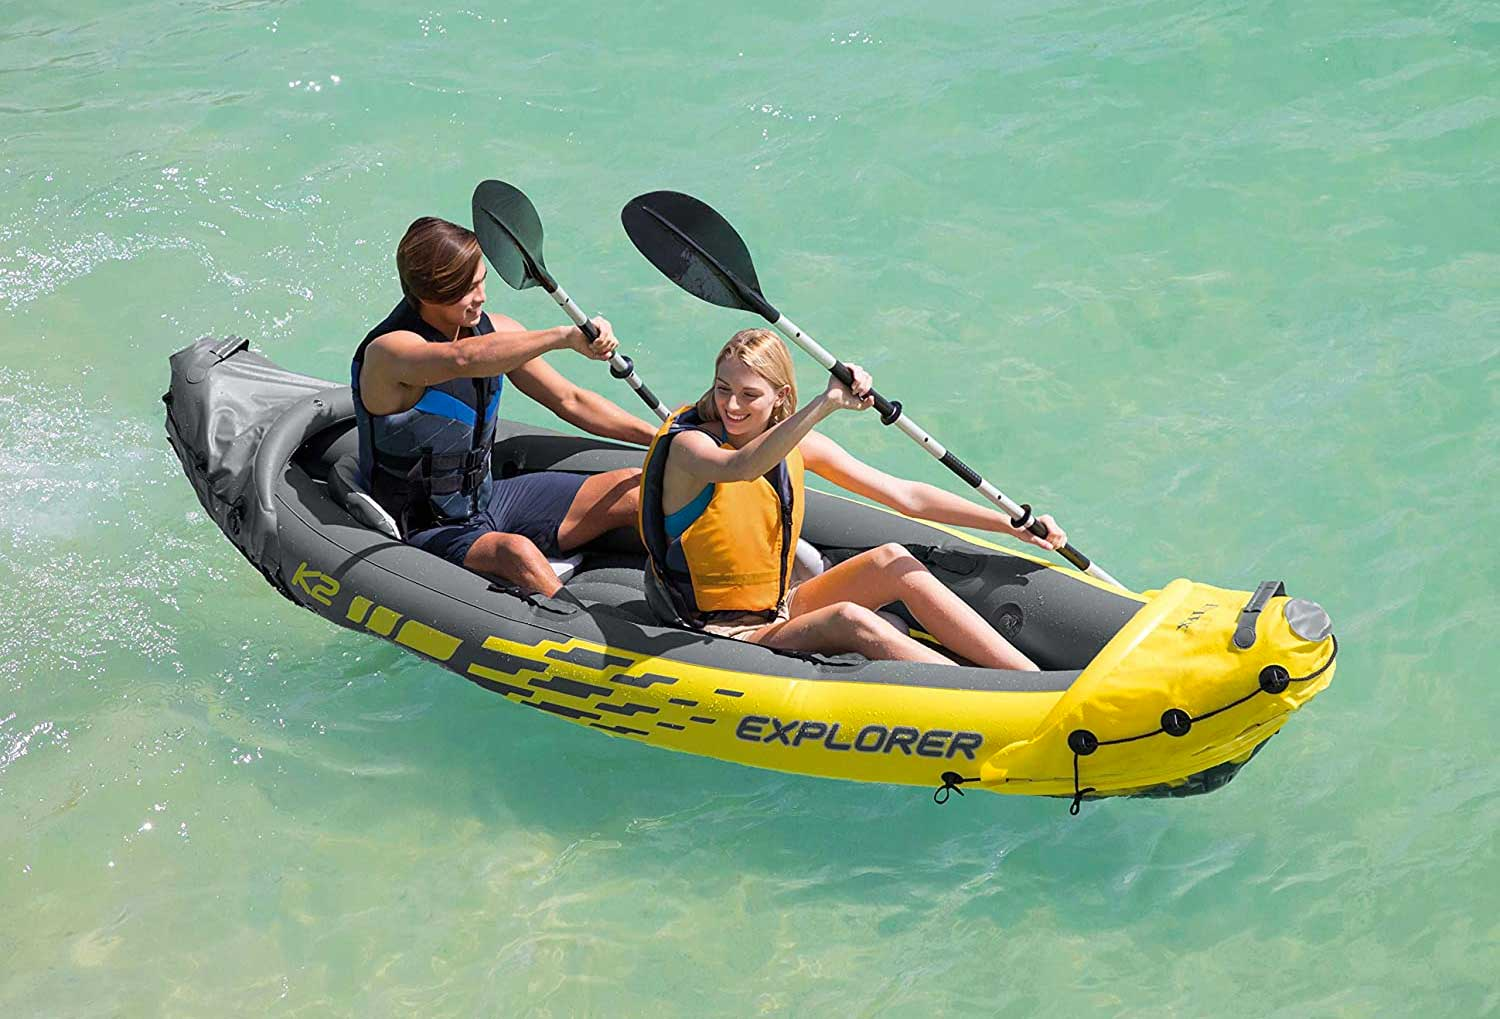 Two people in an inflatable kayak